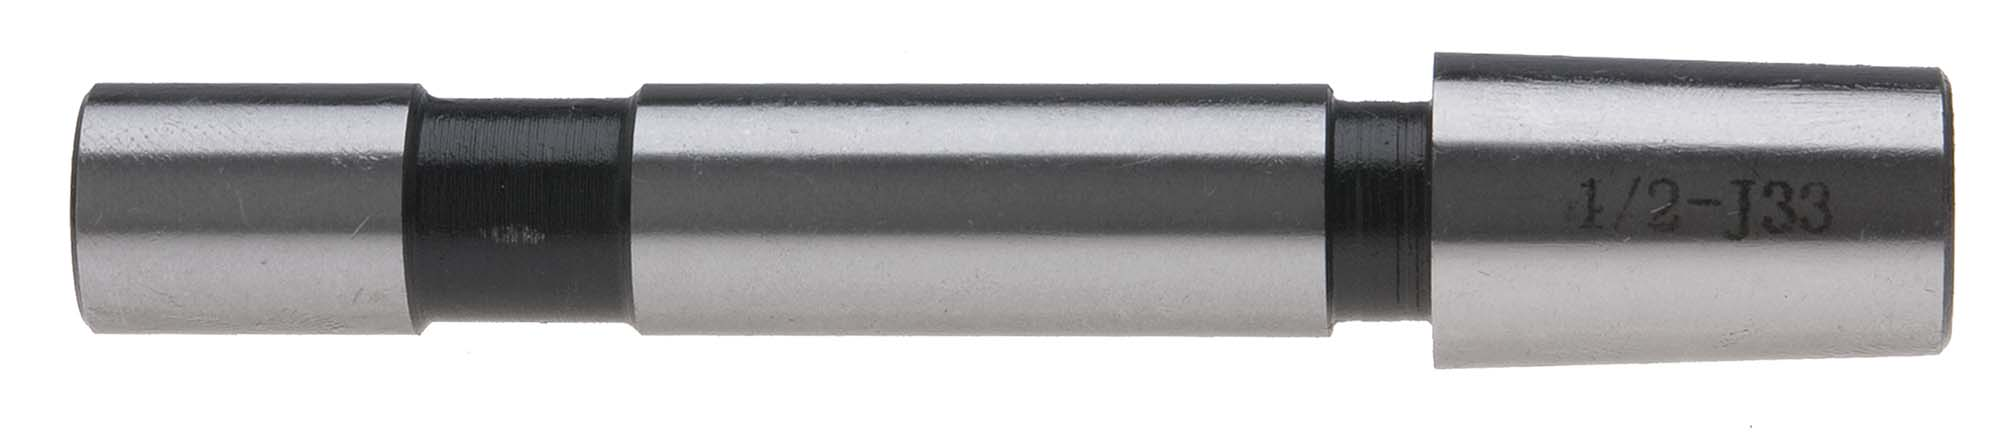 "3/4"" Straight Shank-33 Jacobs Taper Drill Chuck Arbor"